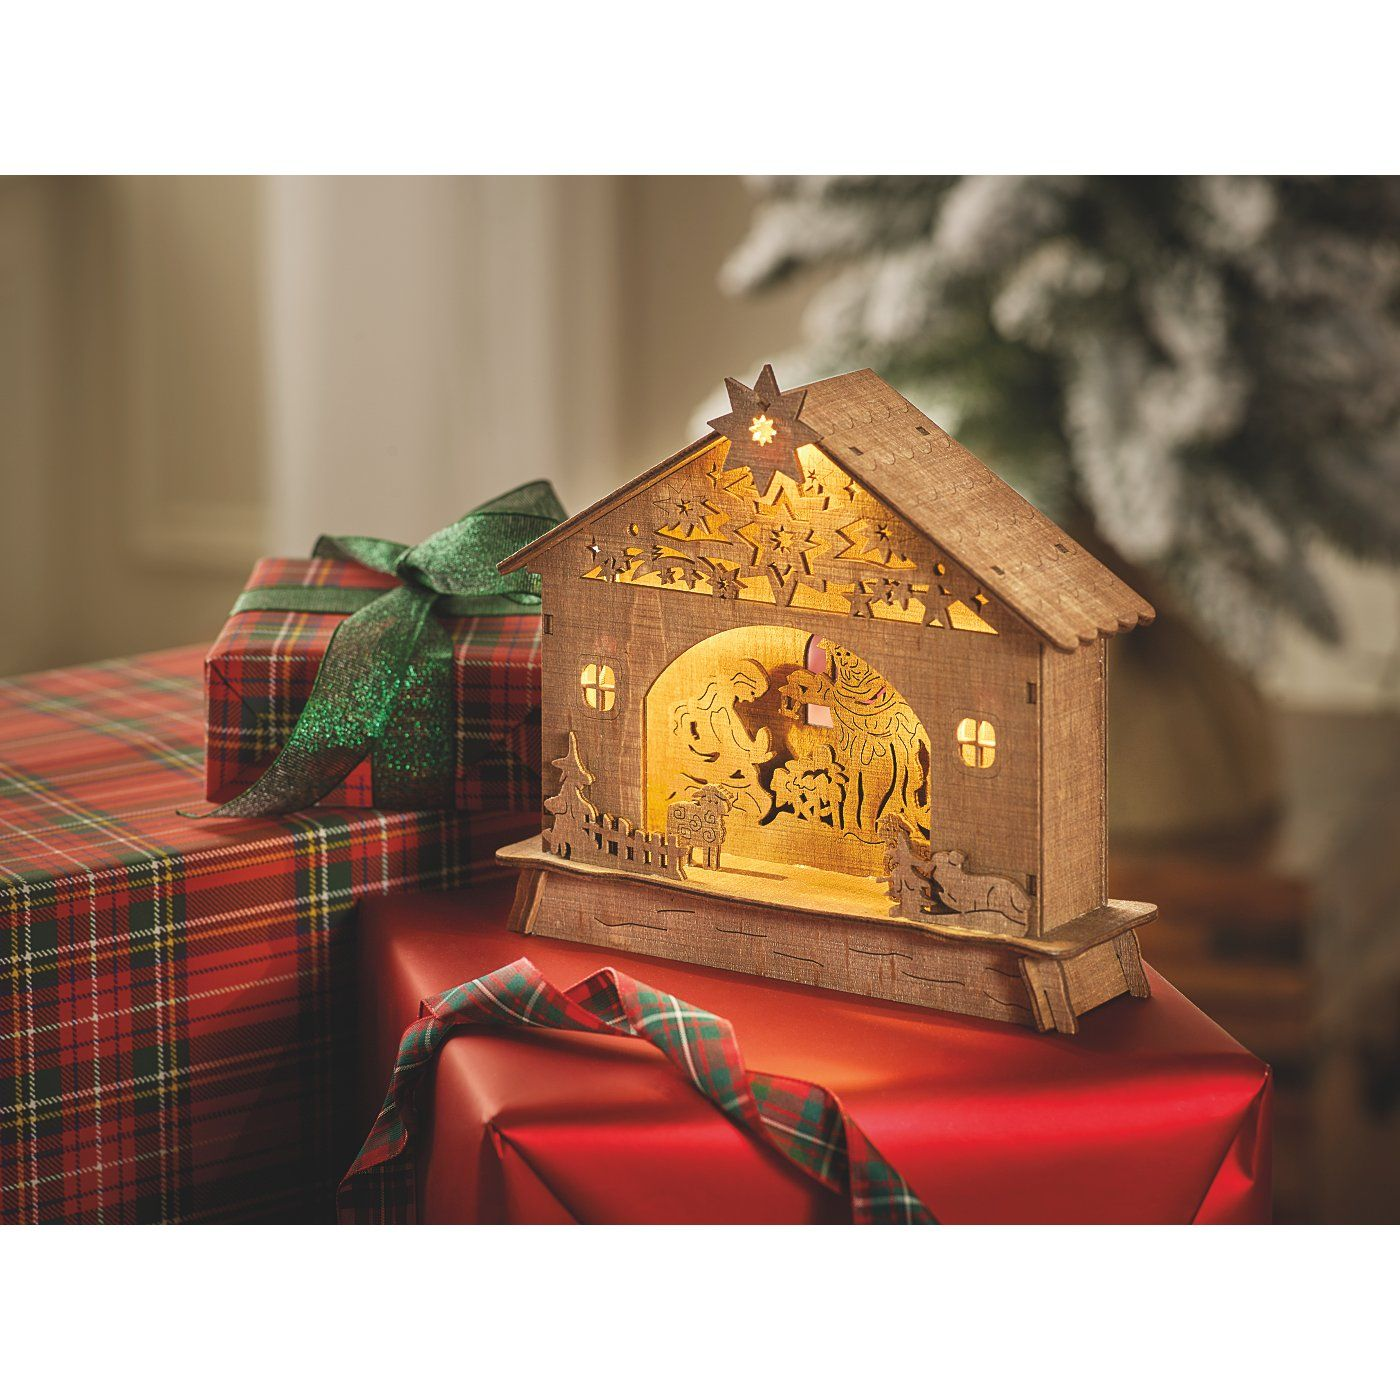 Buy Wooden Light Up Nativity Scene from our Room